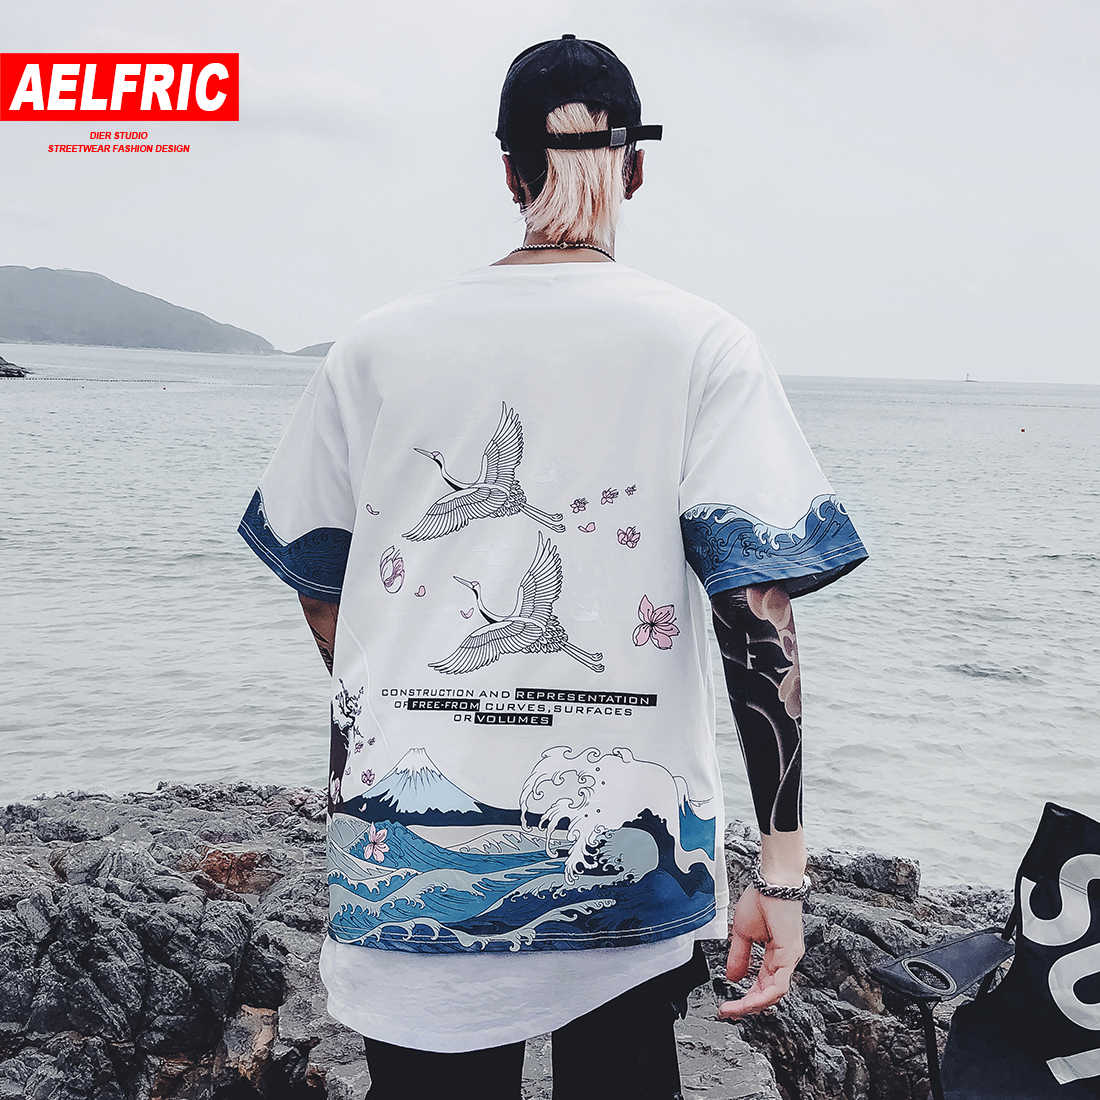 AELFRIC Japanese Style T Shirts Streetwear Mens 2019 Summer Crane Wave Cherry Blossoms Printed Casual Short Sleeve T Shirts Tops